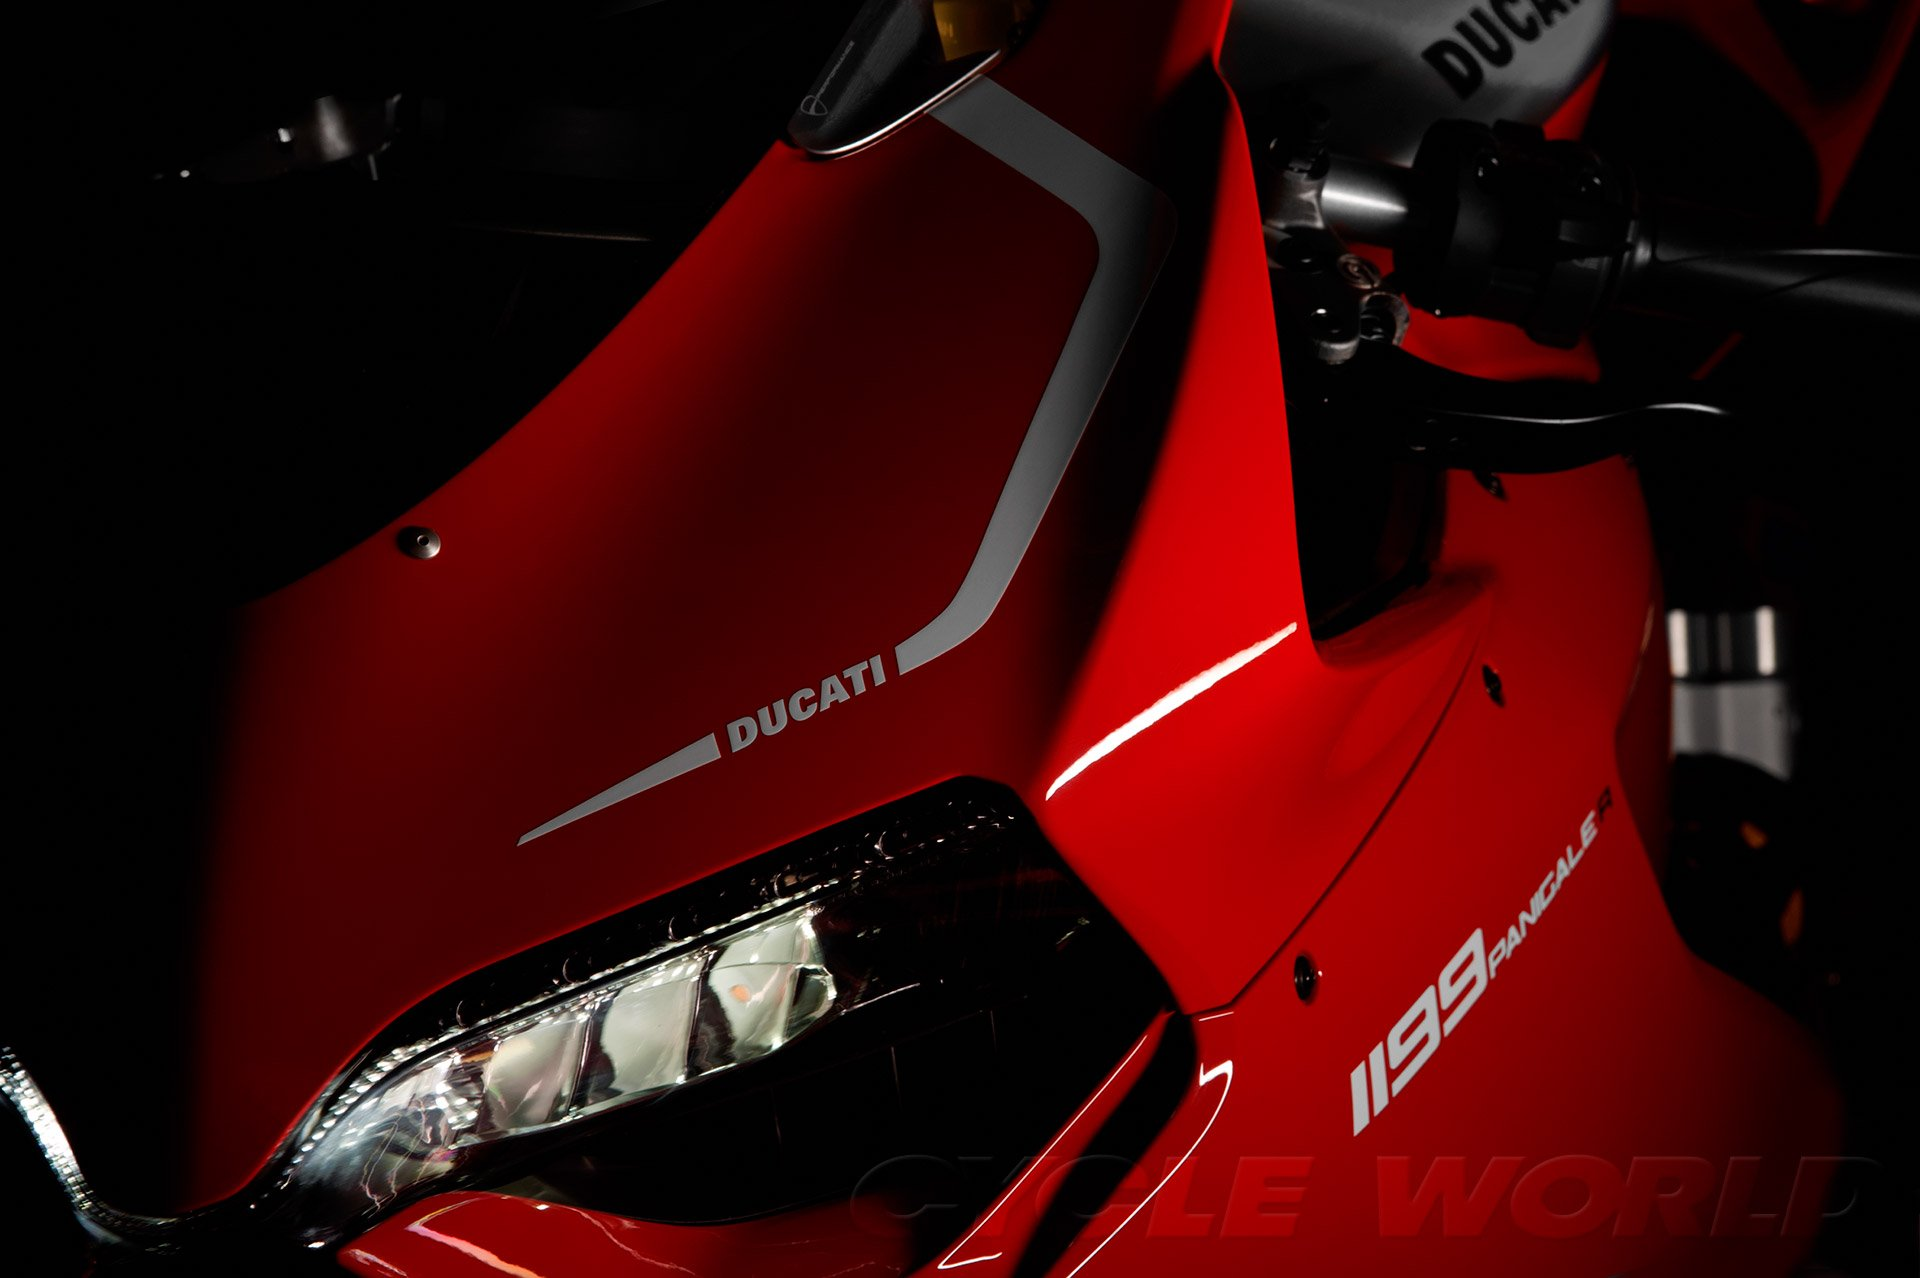 Ducati Panigale Front 24927 Hd Wallpapers in Bikes   Imagescicom 1920x1278